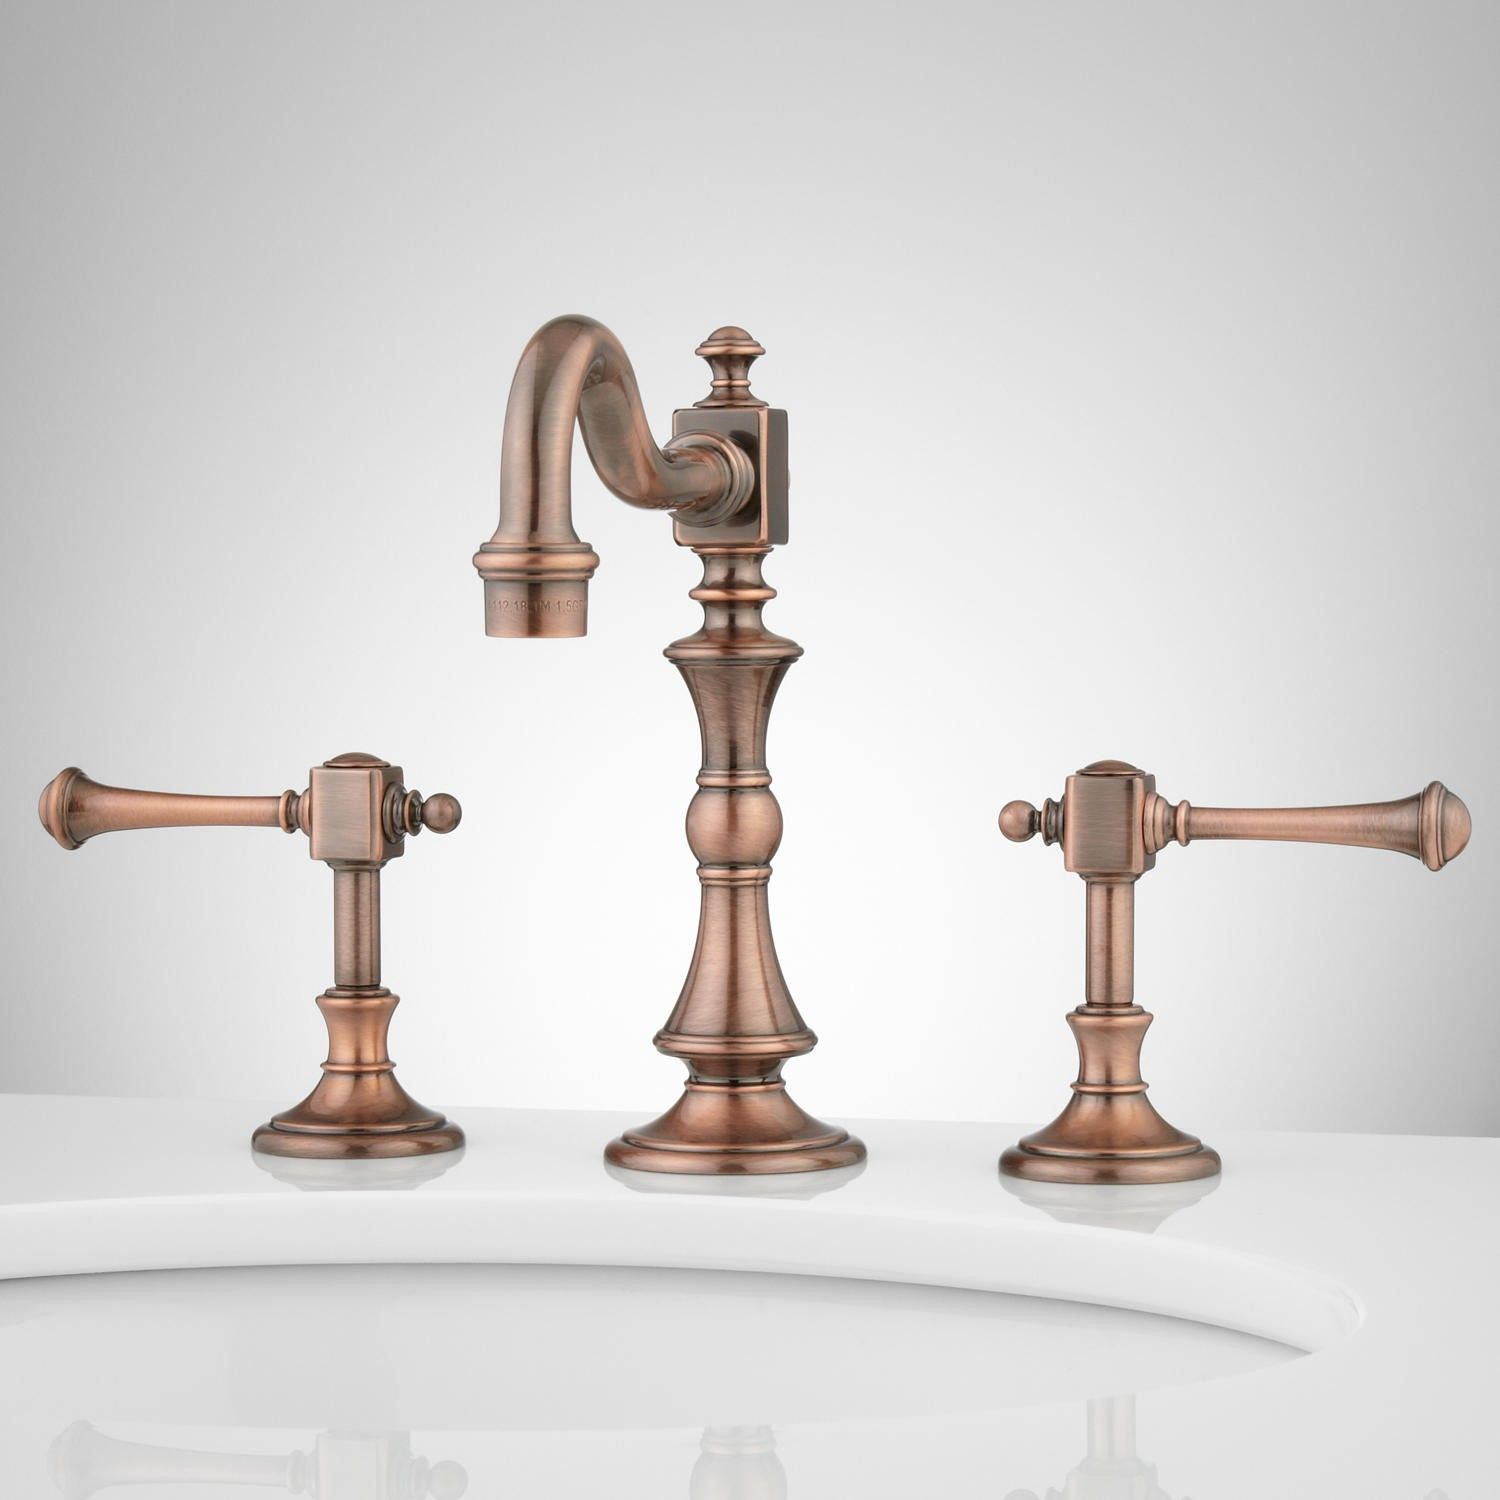 Vintage Widespread Bathroom Faucet - Lever Handles | starting at ...